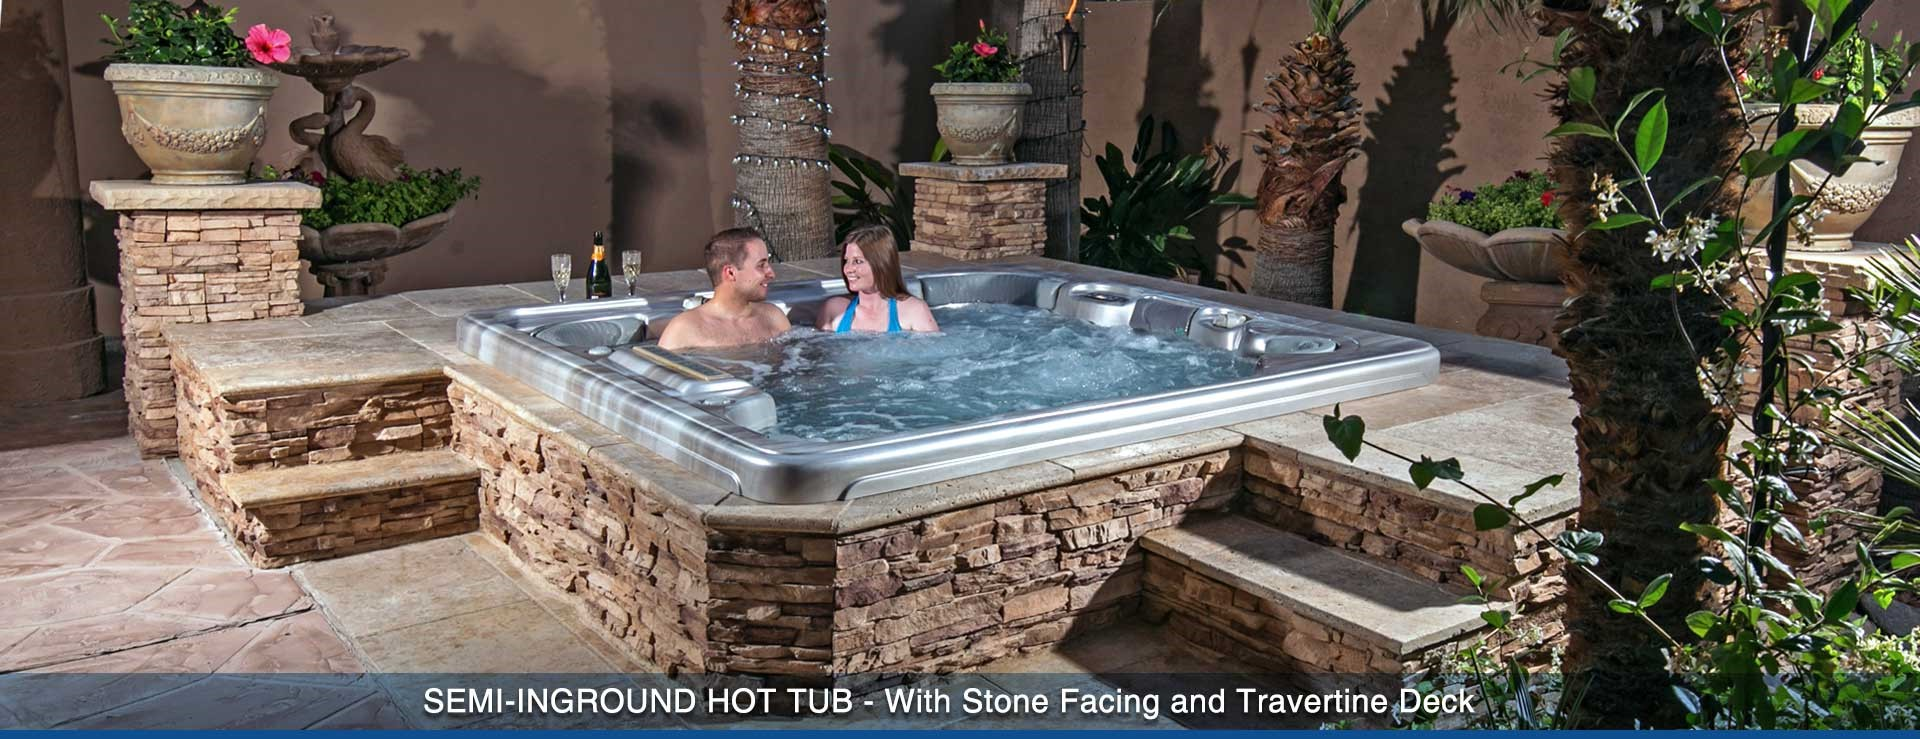 Jacuzzi Pool Ideas Creative Spa Designs Premier Inground Spa Portable Hot Tubs